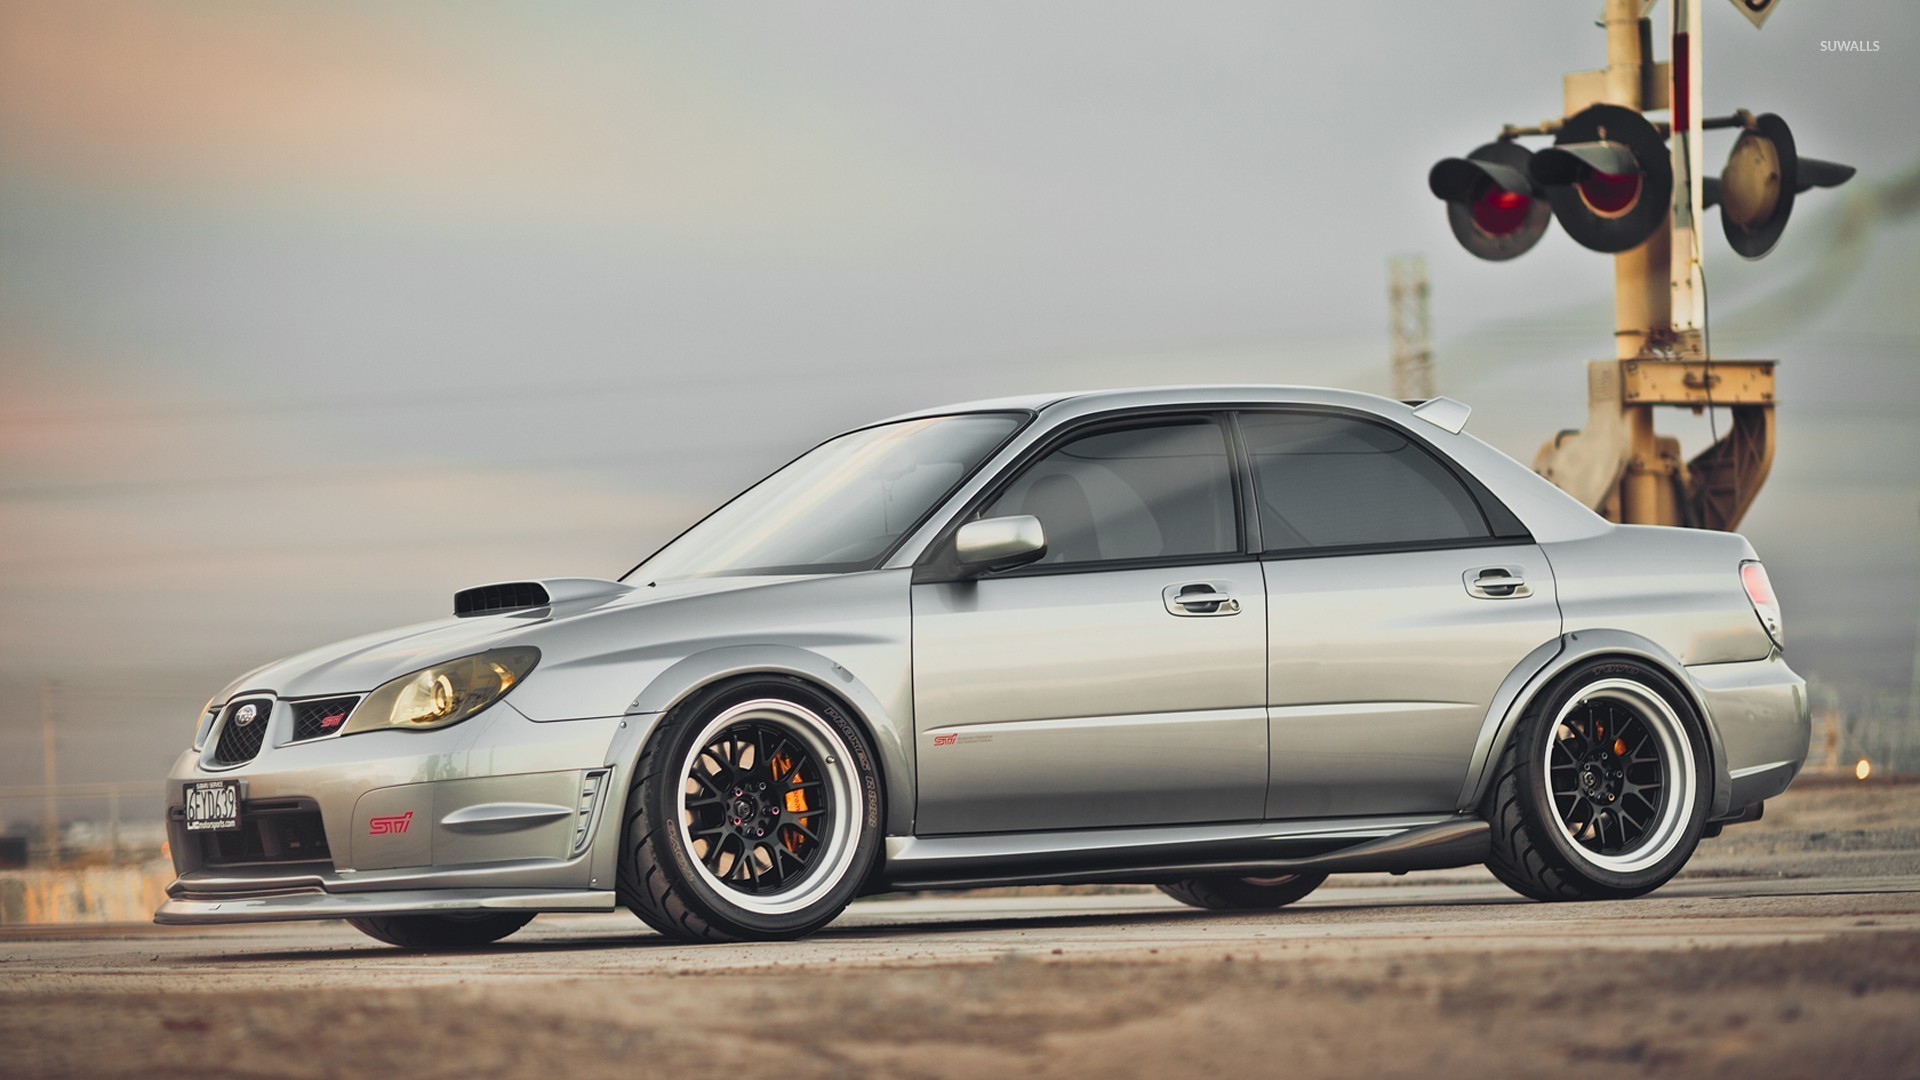 subaru impreza wrx sti wallpaper. Black Bedroom Furniture Sets. Home Design Ideas